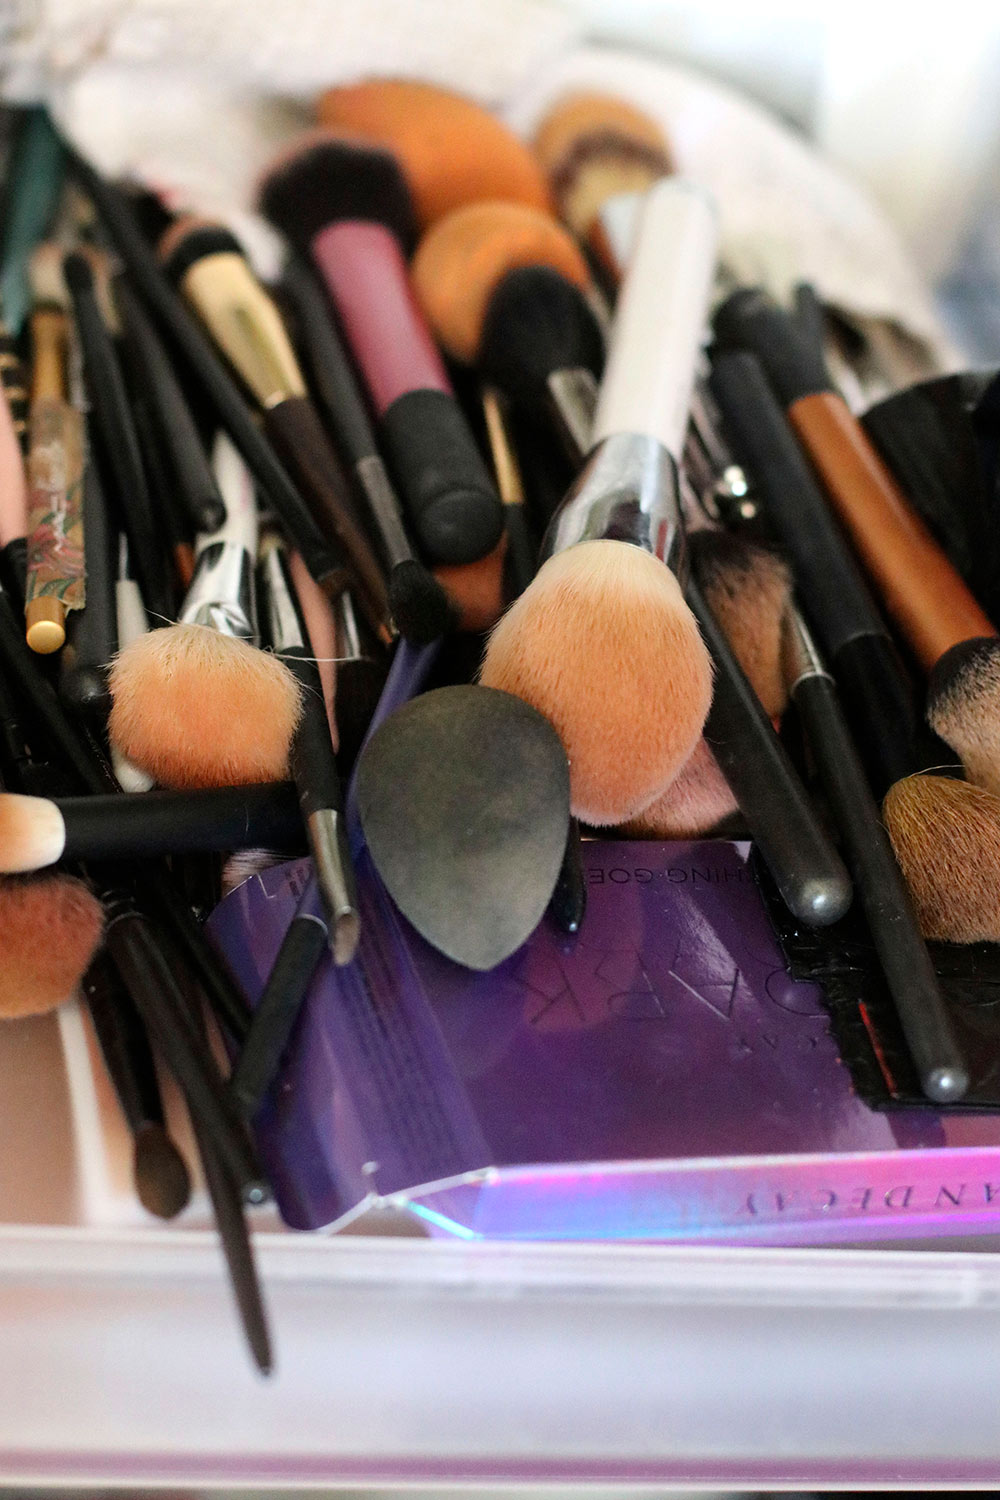 What Parts of Your Makeup Collection Would You Like to Build Up/Trim Down (Palettes, Powders, Lipsticks, Etc.)?